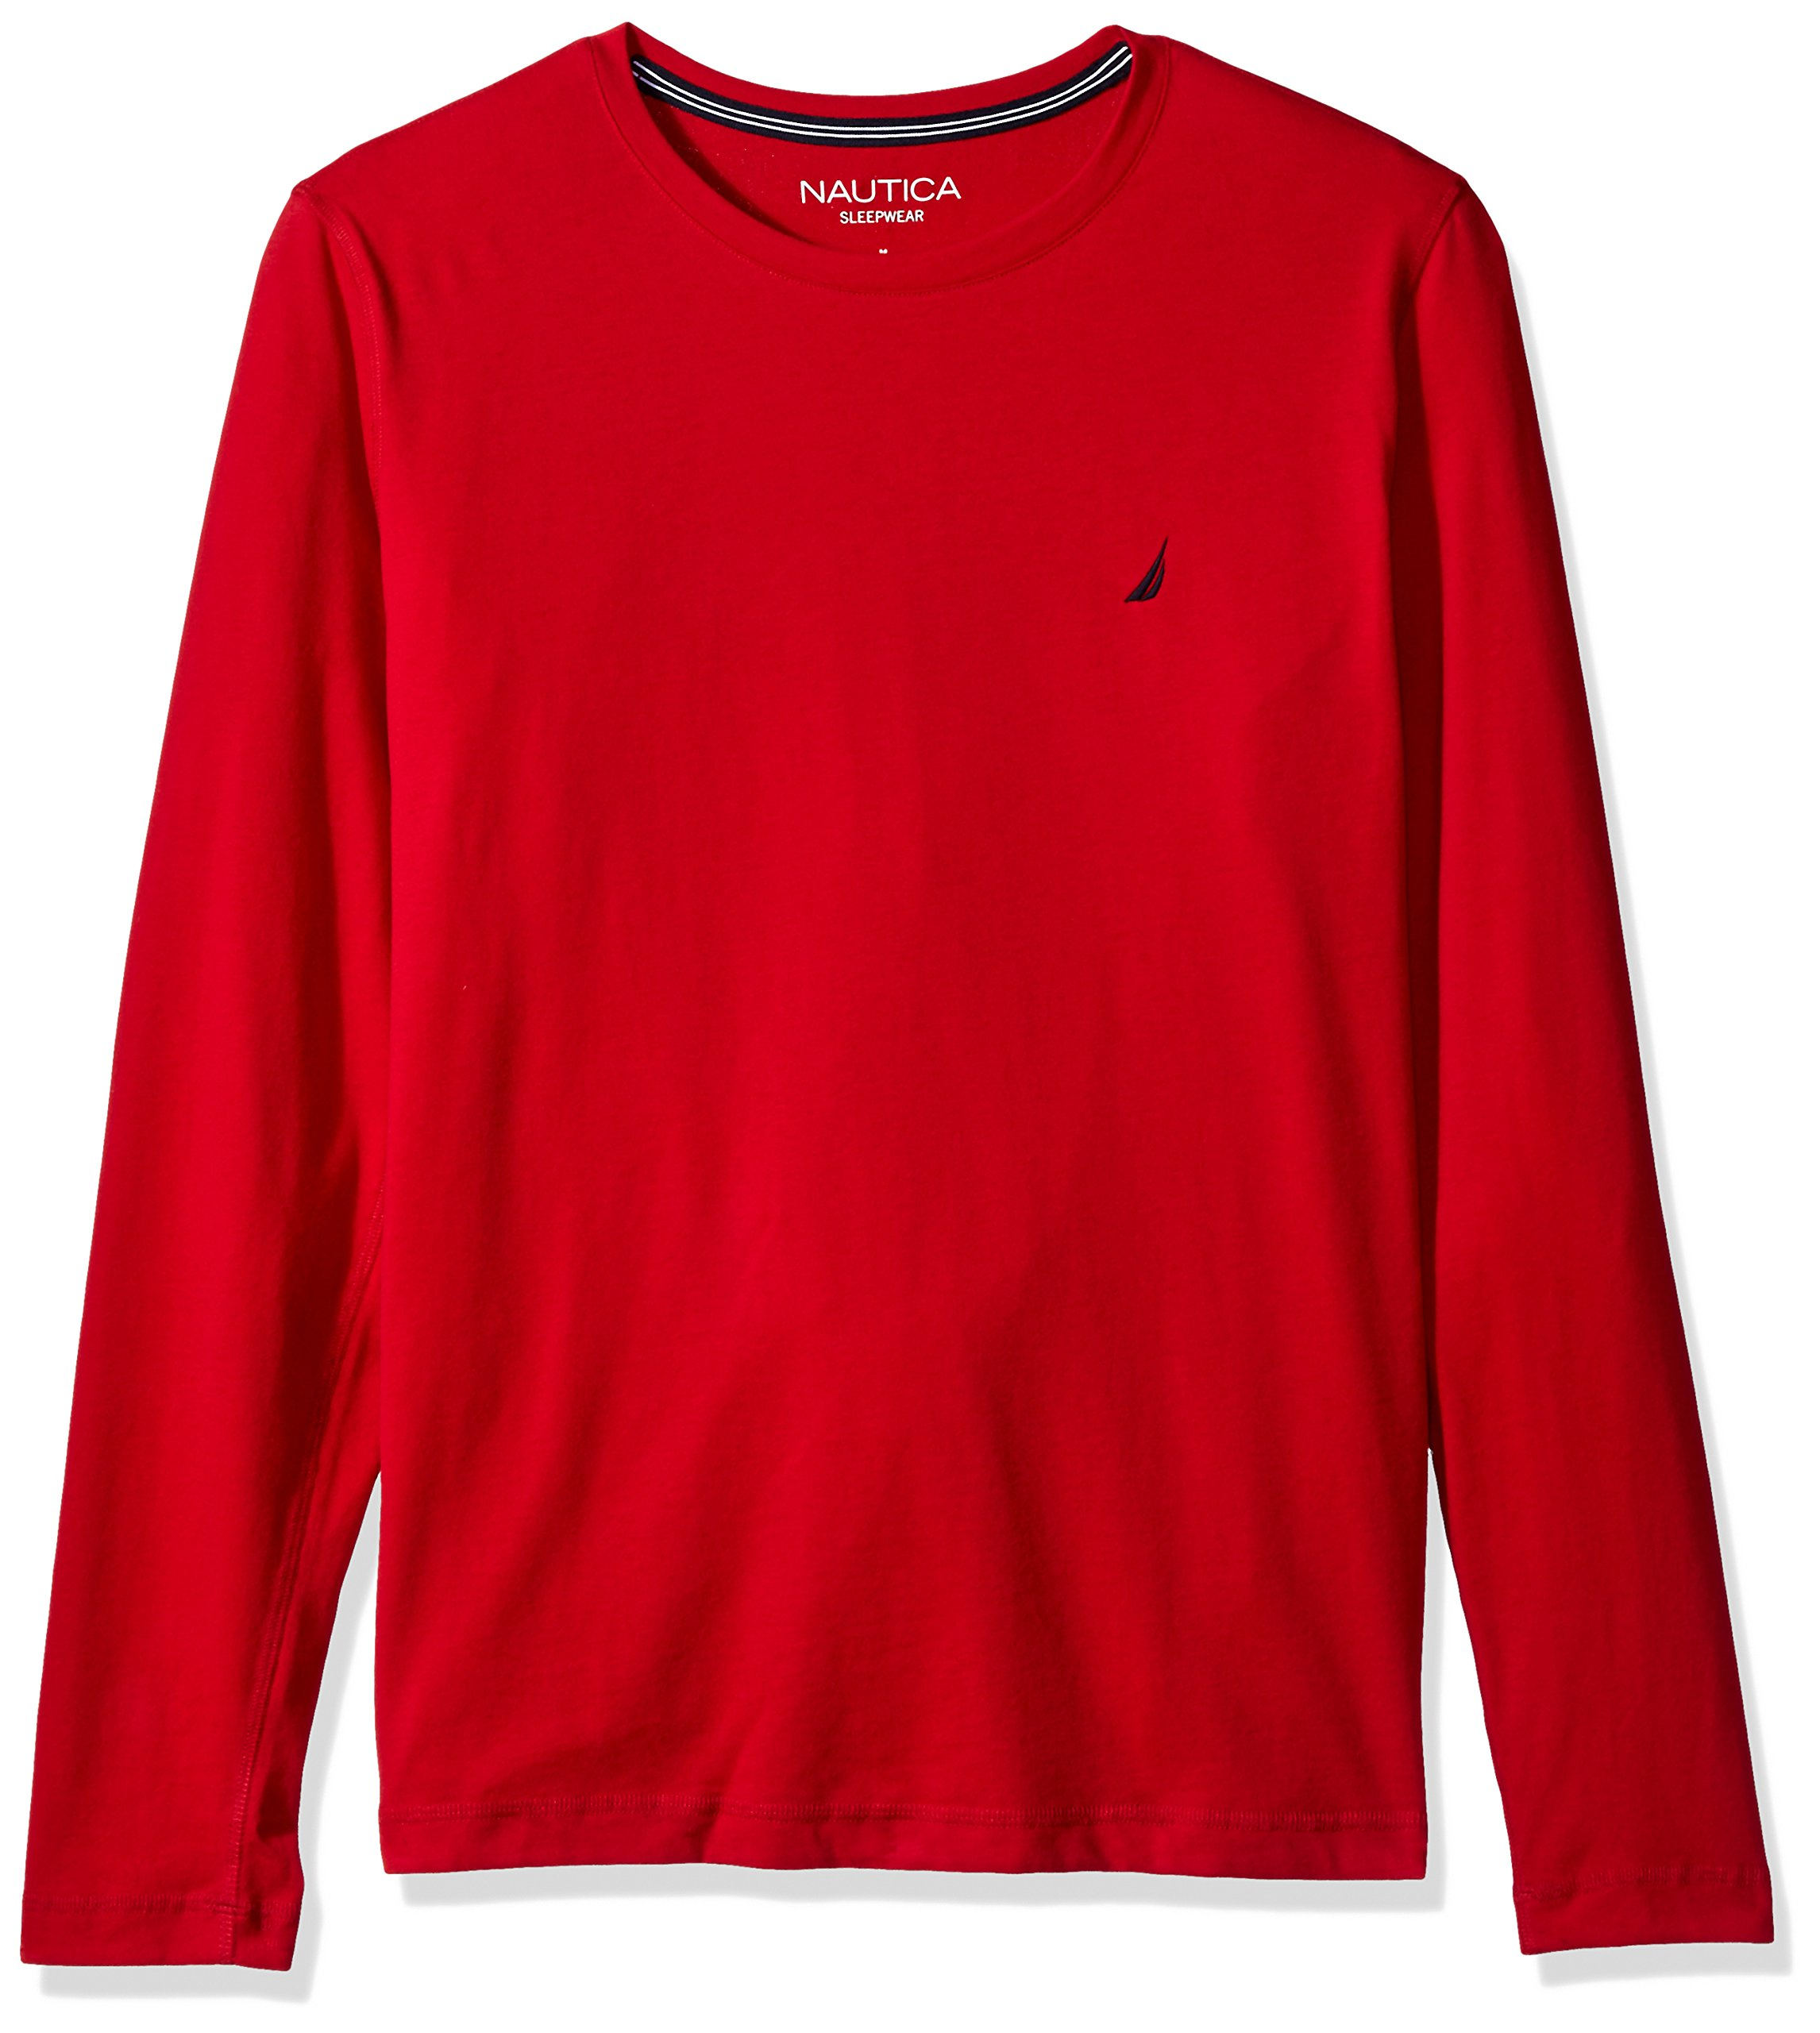 Nautica Men's Long Sleeve Crew Neck Soft Sleep Tee, Red, X-Large